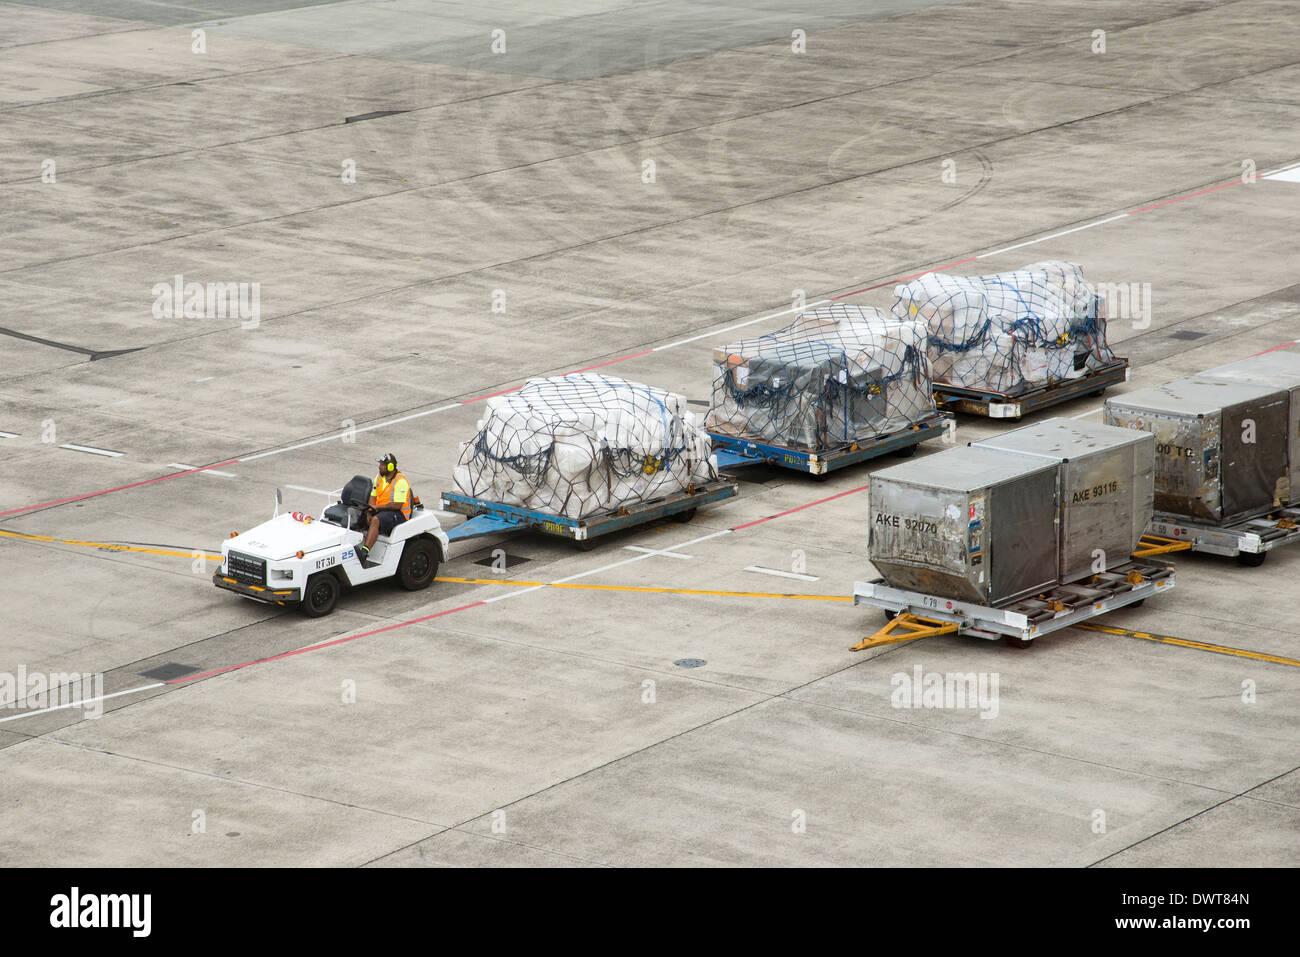 Airport cargo and freight handling truck at Auckland International Airport New Zealand - Stock Image